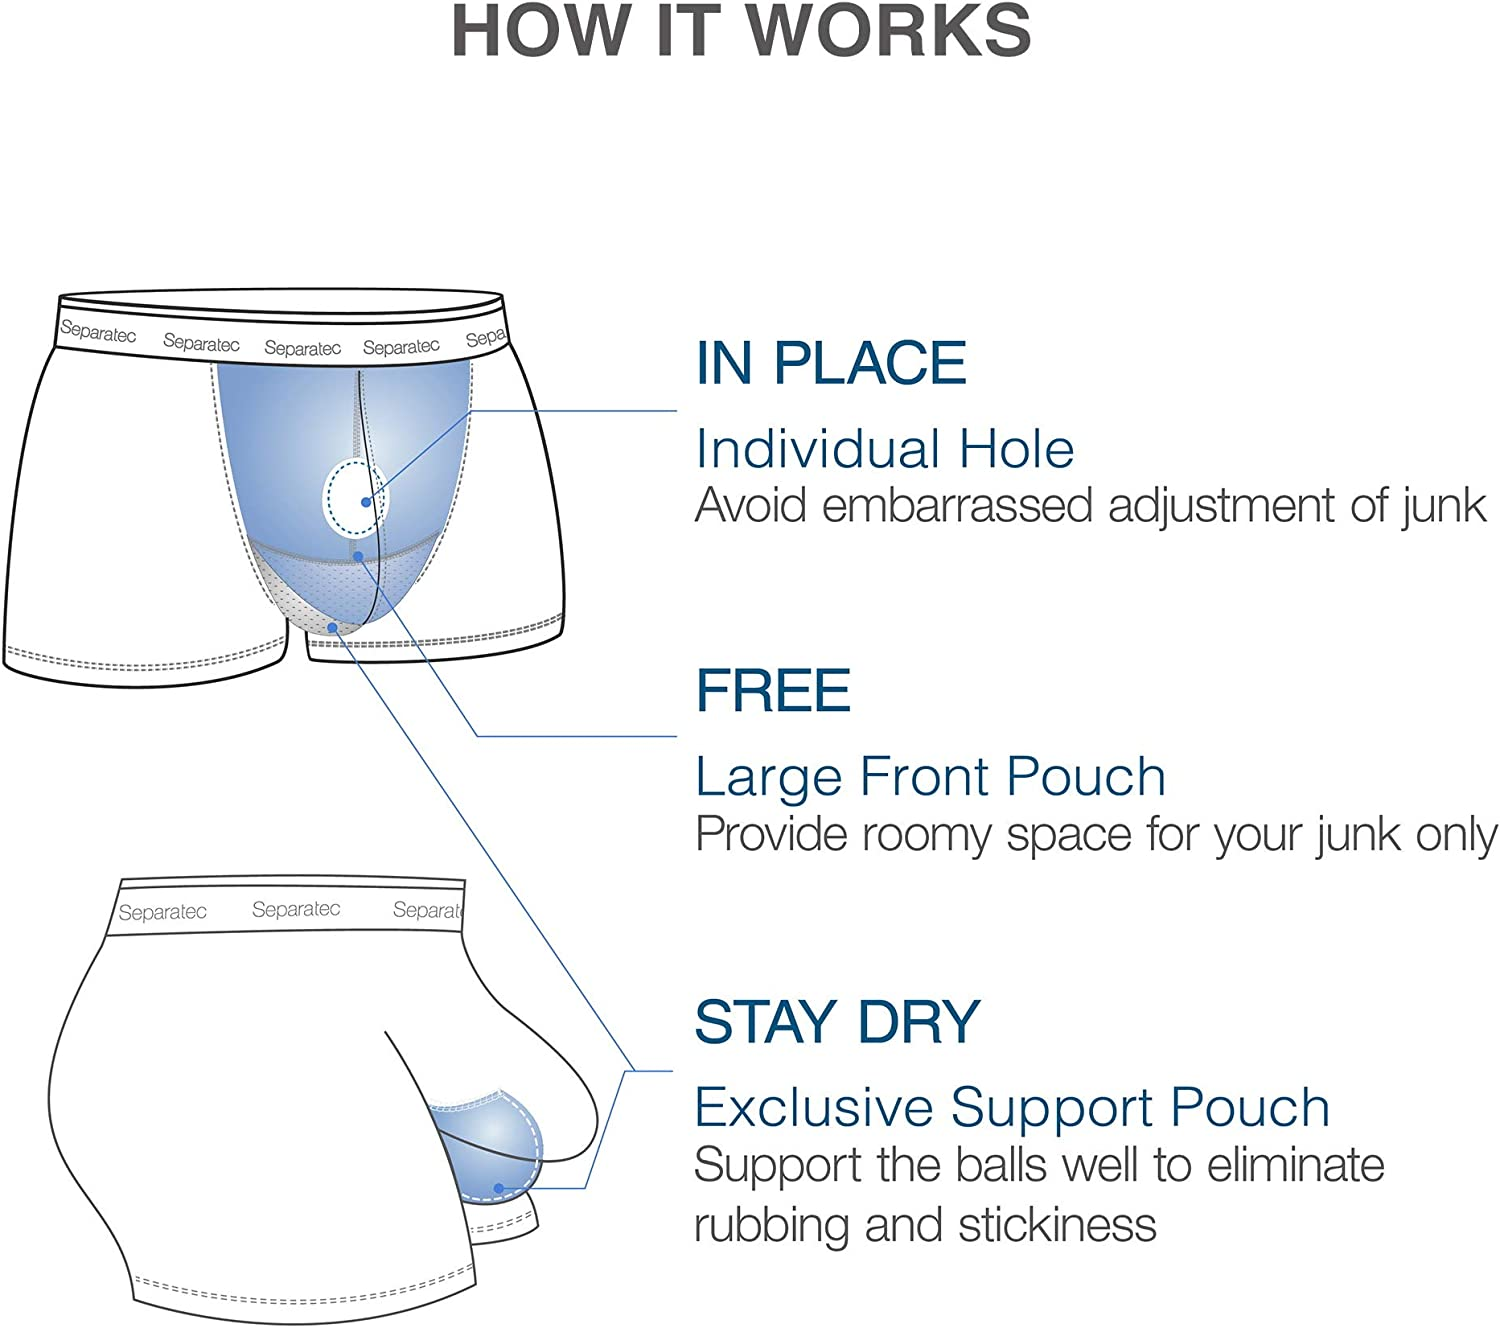 Separatec Men/'s Underwear Comfort Soft Micro Modal Trunks with Dual Pouch 3 Pack